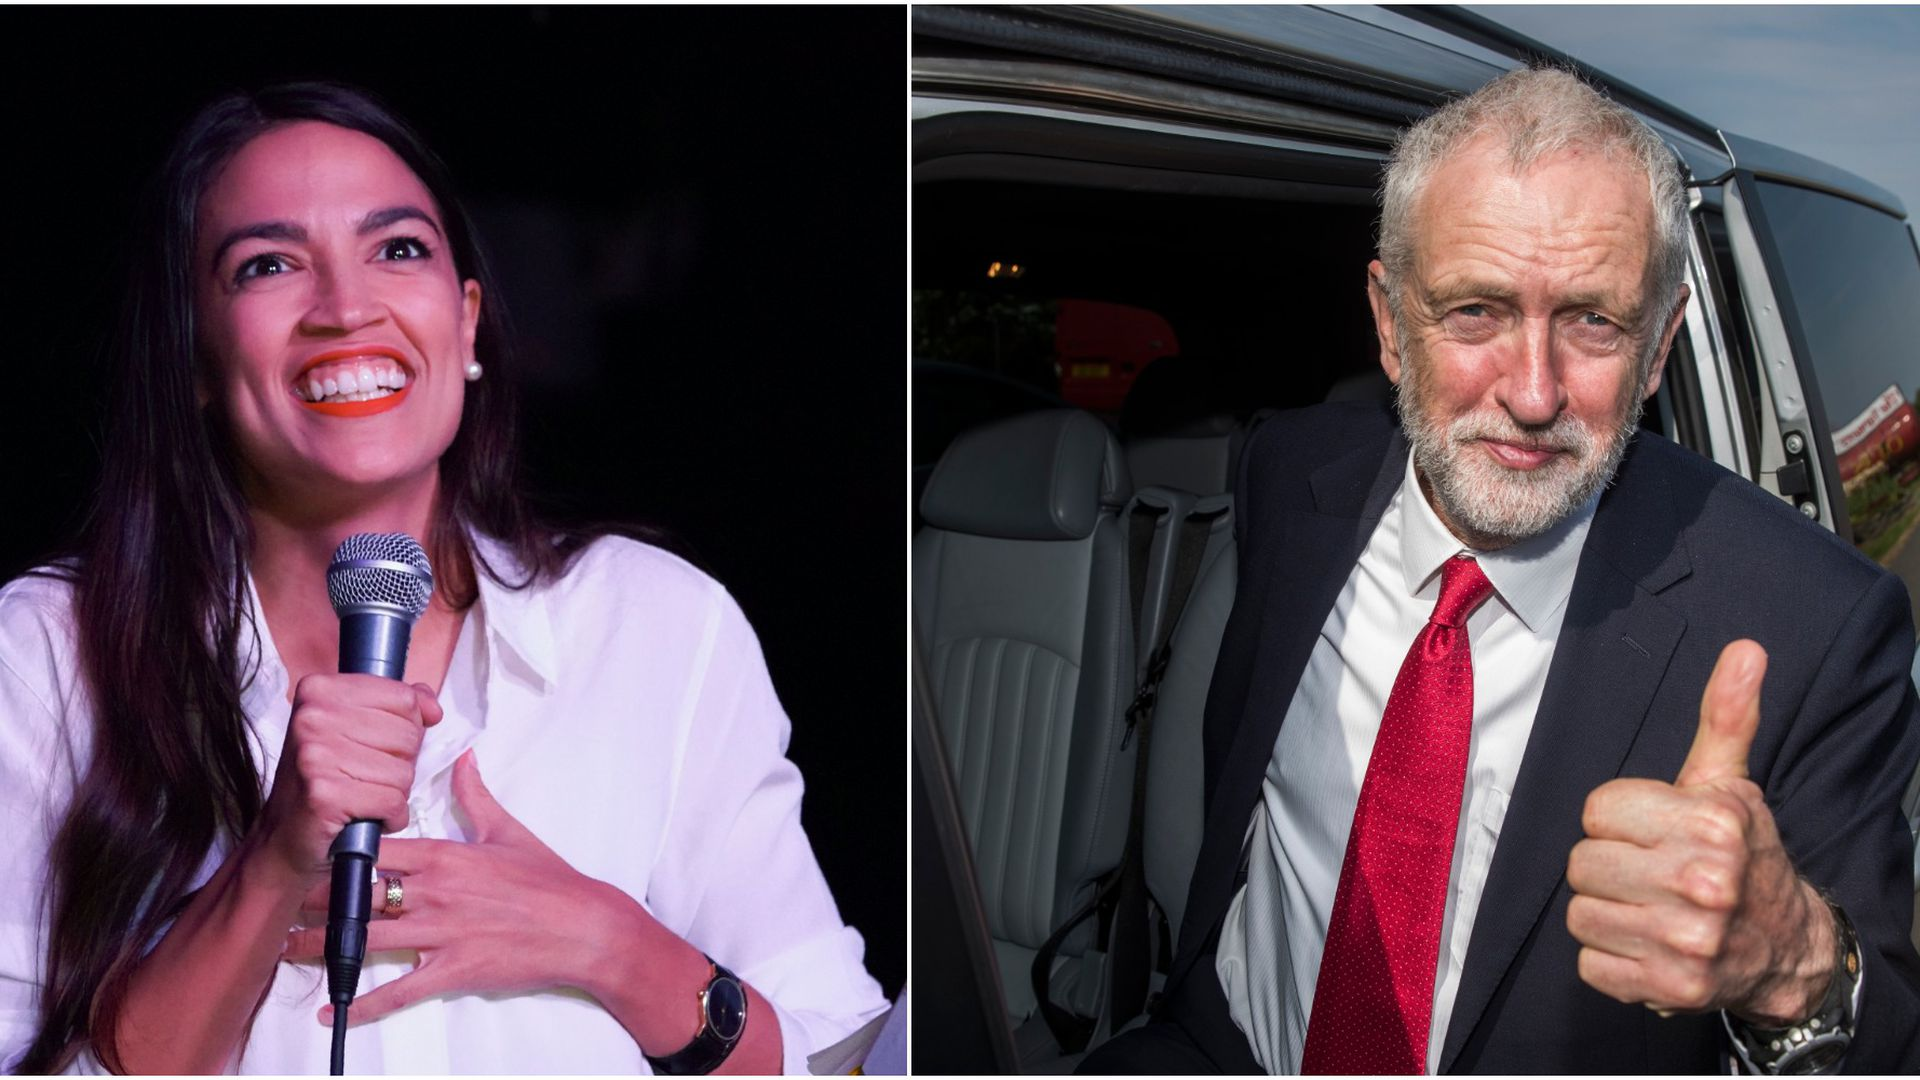 """Socialism is storming back"": The Economist compares Alexandria Ocasio-Cortez to Jeremy Corbyn"